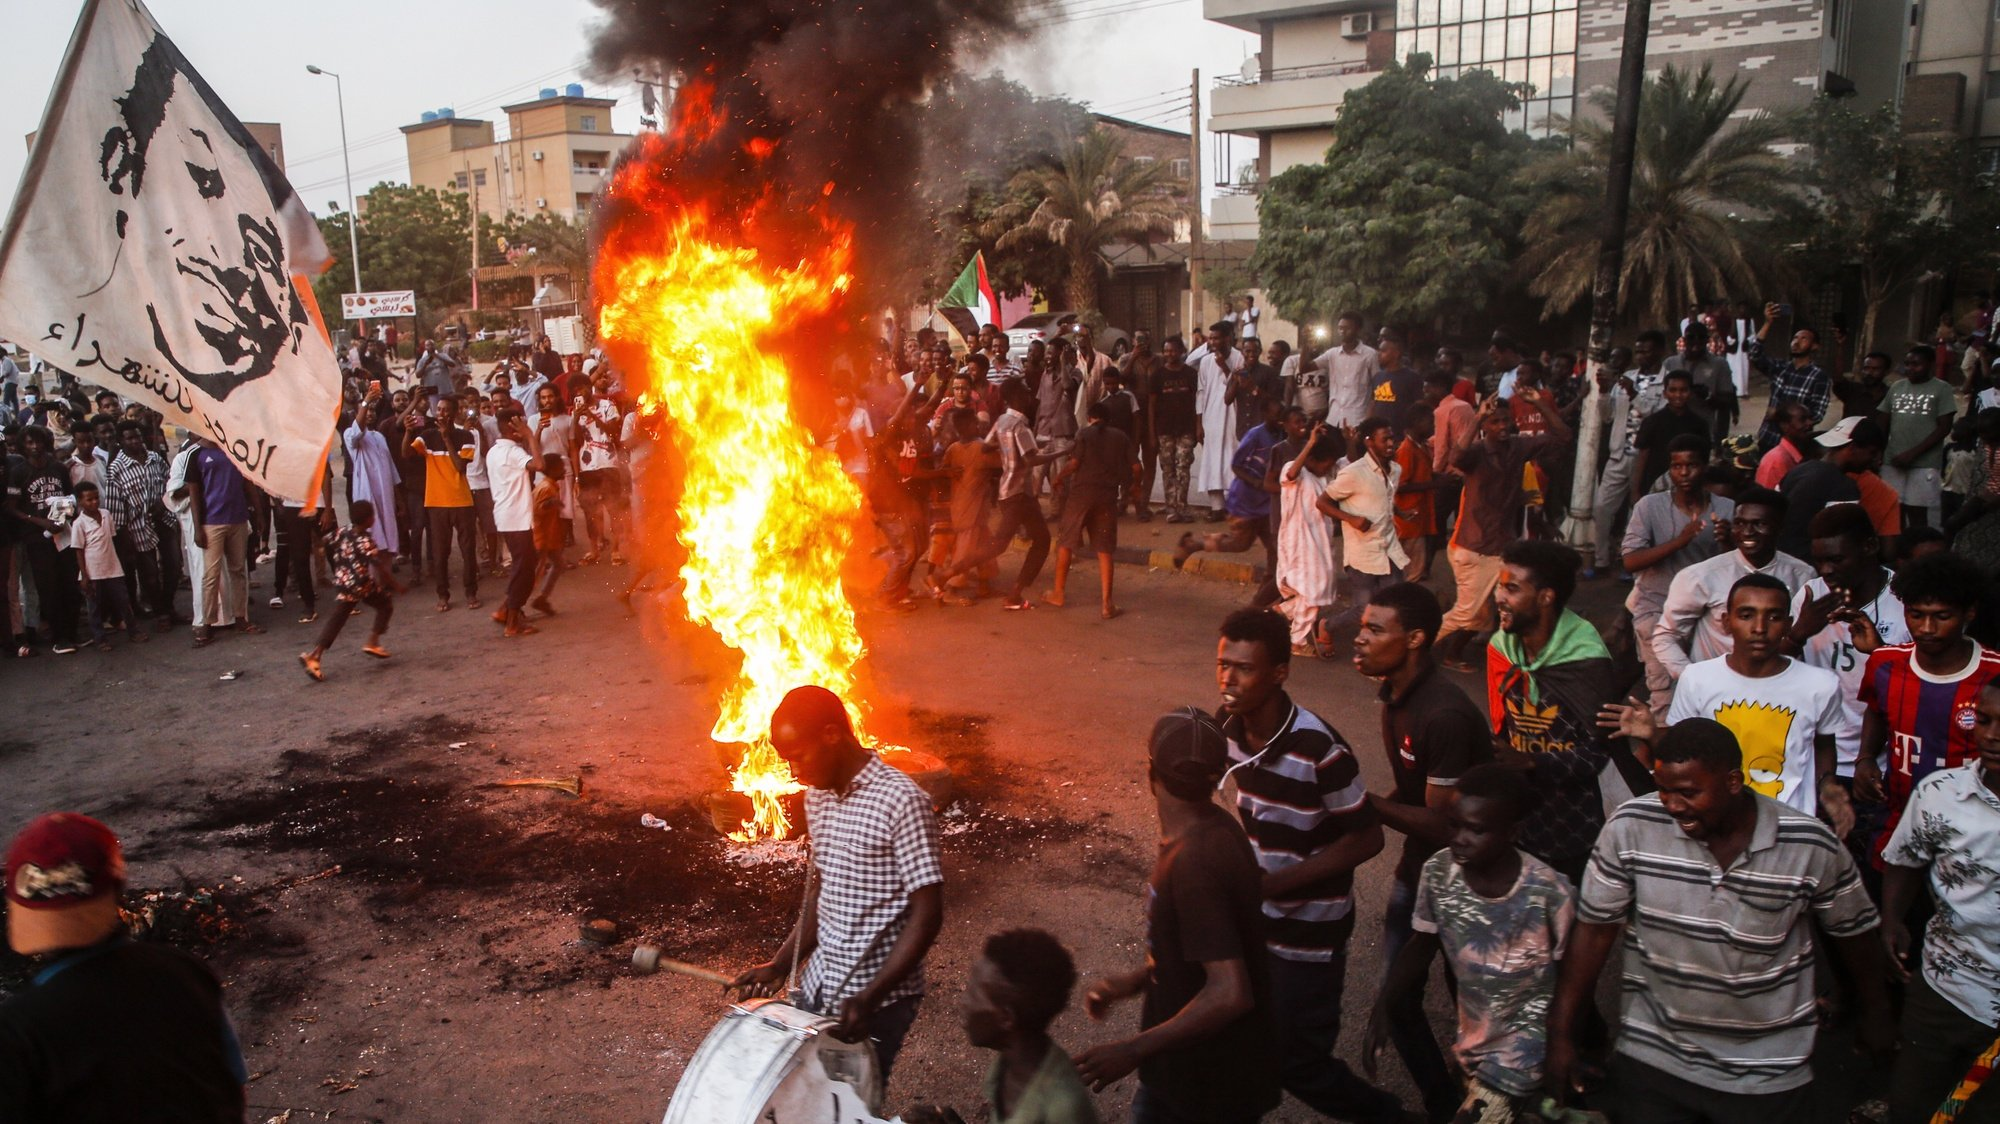 epaselect epa09547395 Sudanese protesters chant slogans next to burning tires during a demonstration in the capital Khartoum, Sudan, 26 October 2021. Protests continued in Sudan on 26 October a day after Sudan's military launched a coup attempt and arrested the Prime Minister Abdalla Hamdok and other senior ministers and civilian members of the Transitional Sovereignty Council during early morning raids. According to the reports seven people were killed and 140 were injured in the country.  EPA/MOHAMMED ABU OBAID